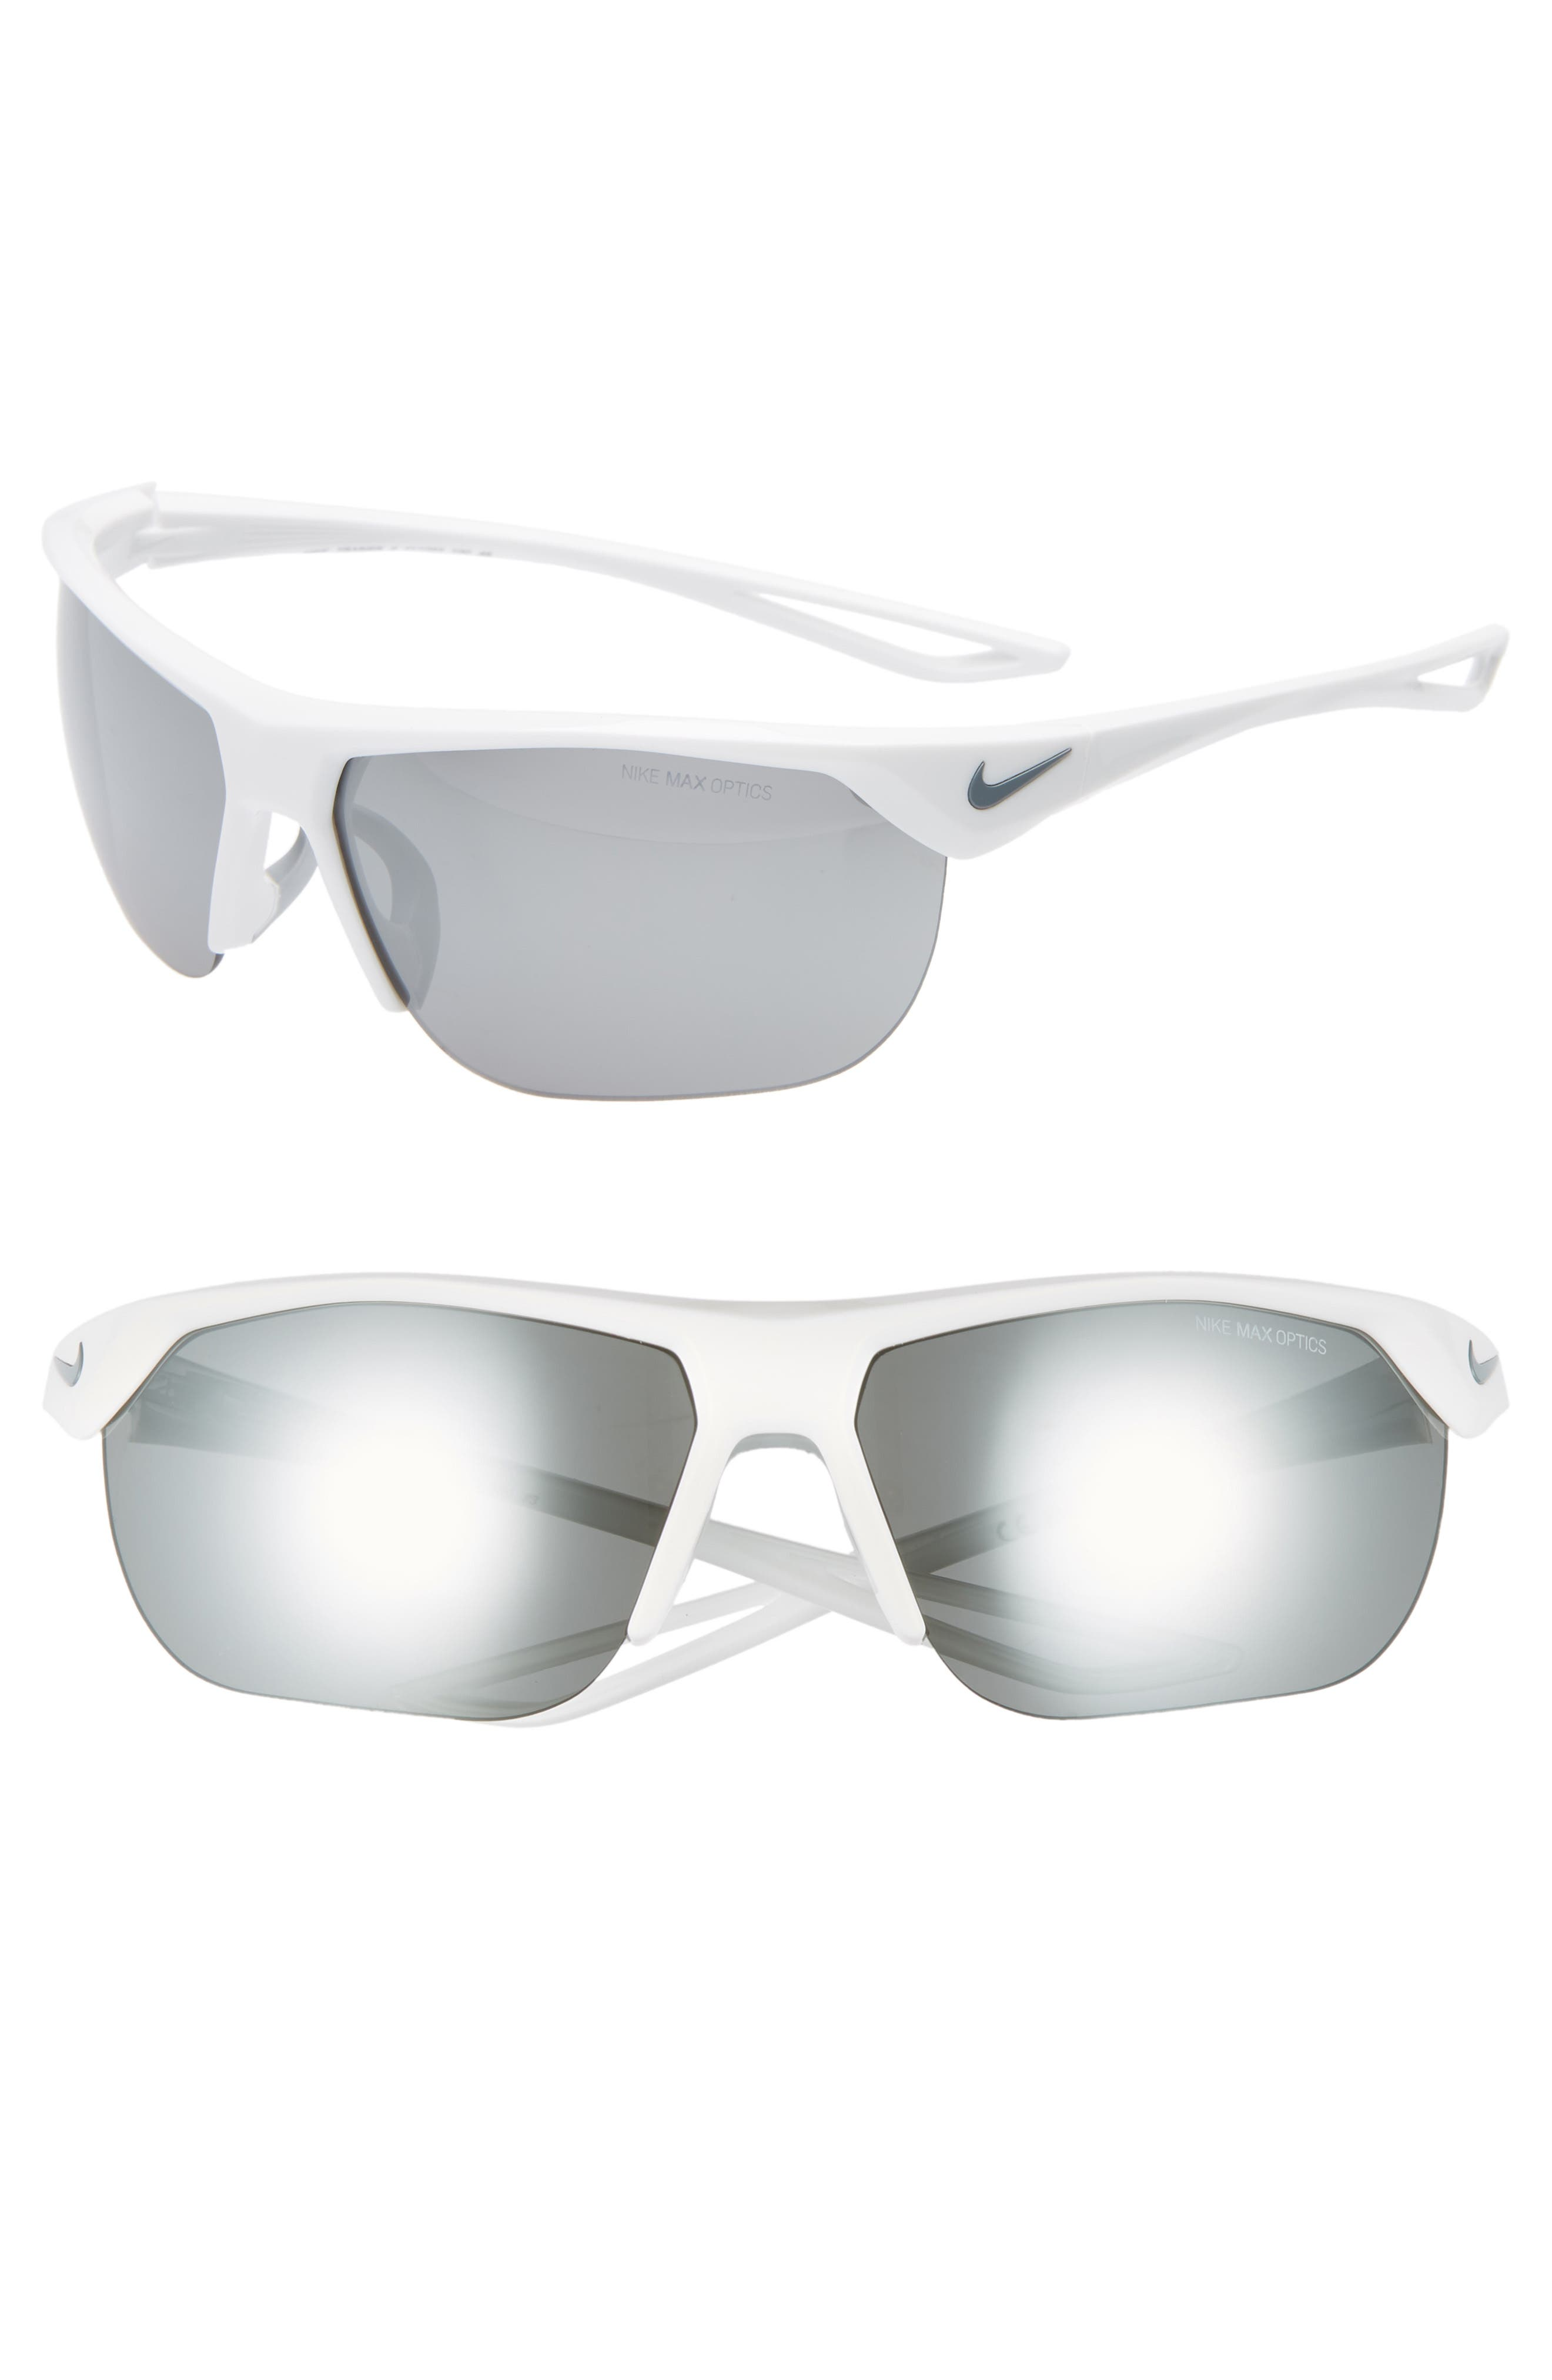 Nike Trainer 6m Mirrored Shield Sunglasses - White/ Grey